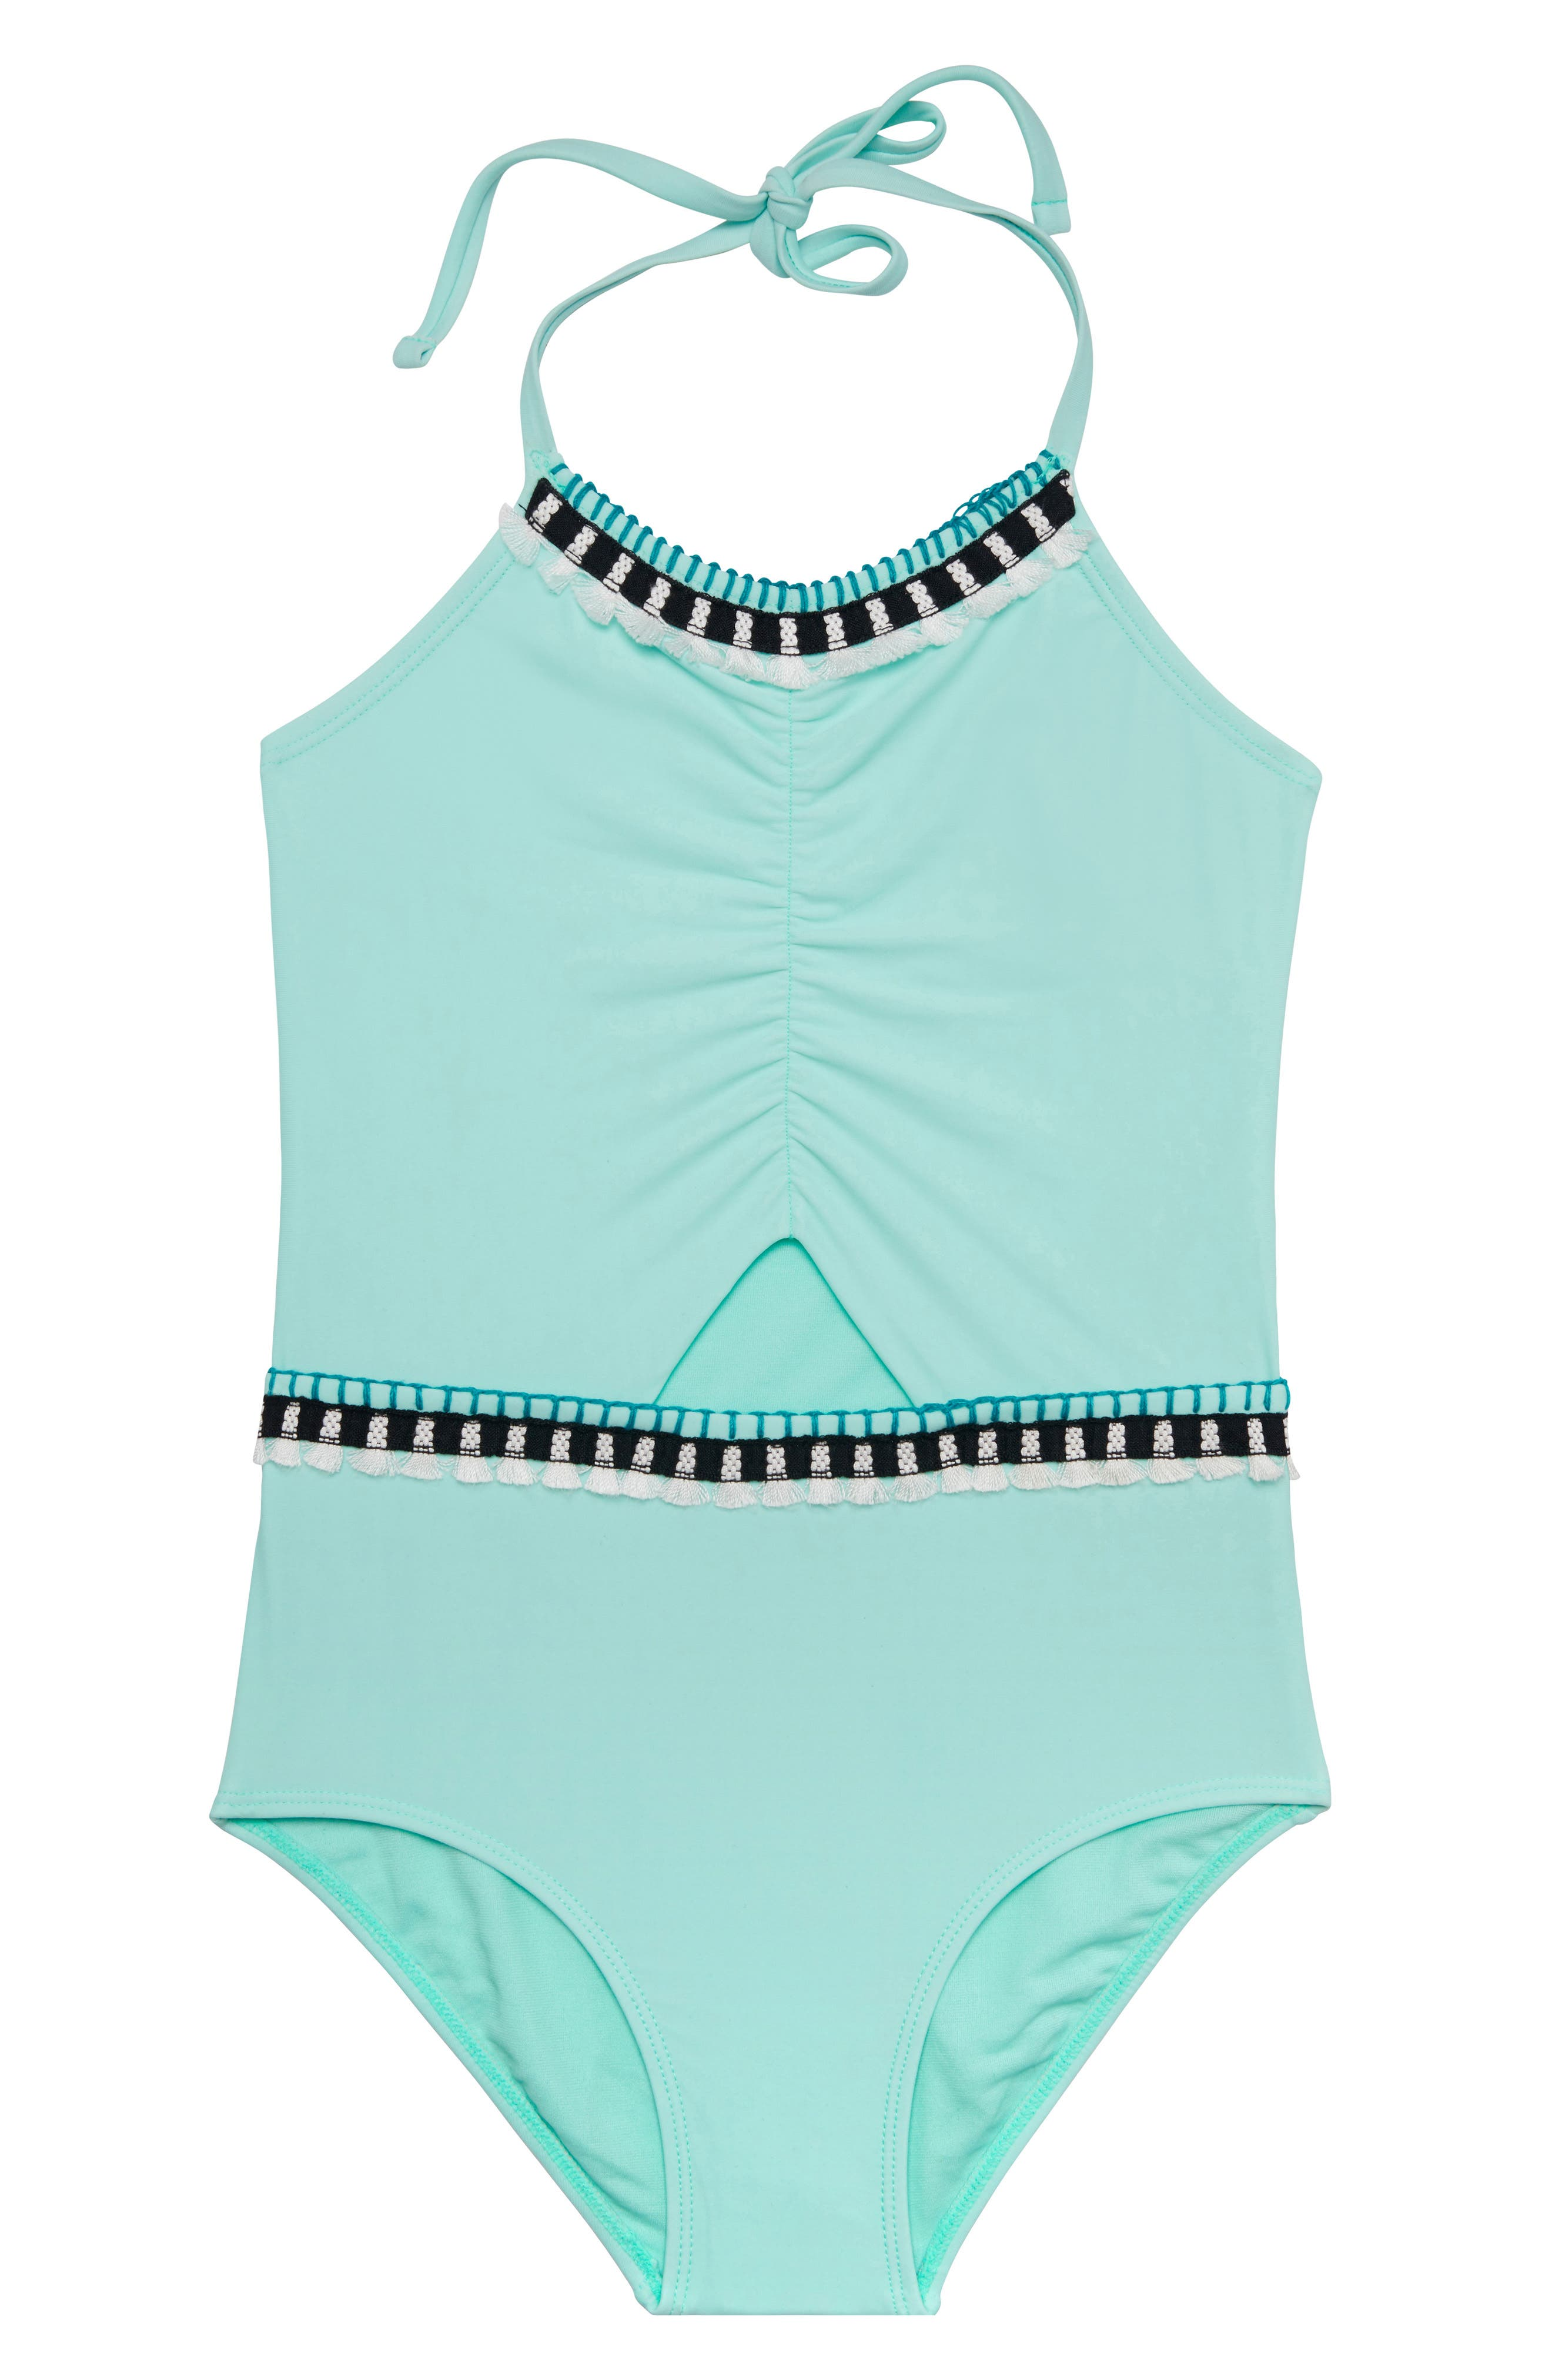 GOSSIP GIRL Tassel Party One-Piece Swimsuit, Main, color, BLUE